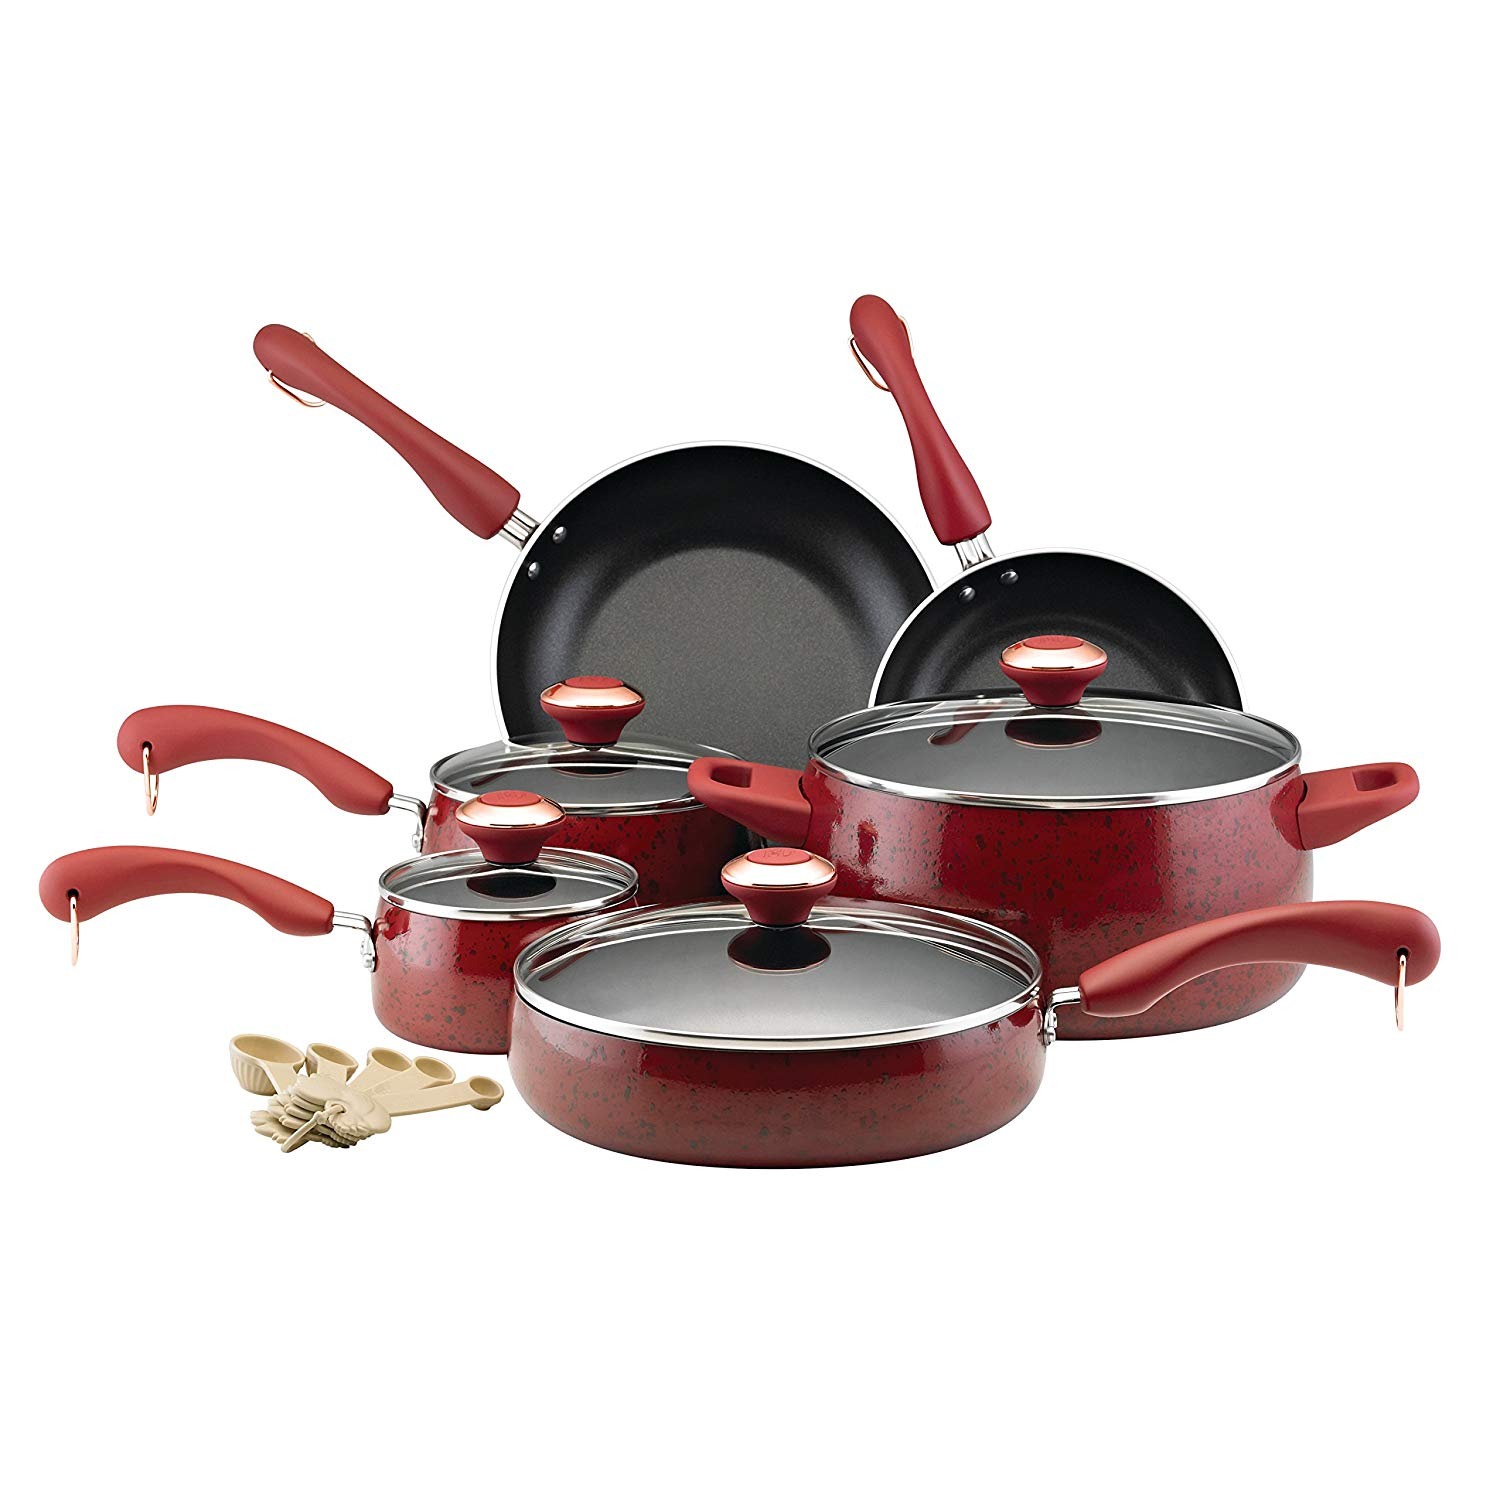 paula deen signature nonstick 15 piece porcelain cookware set